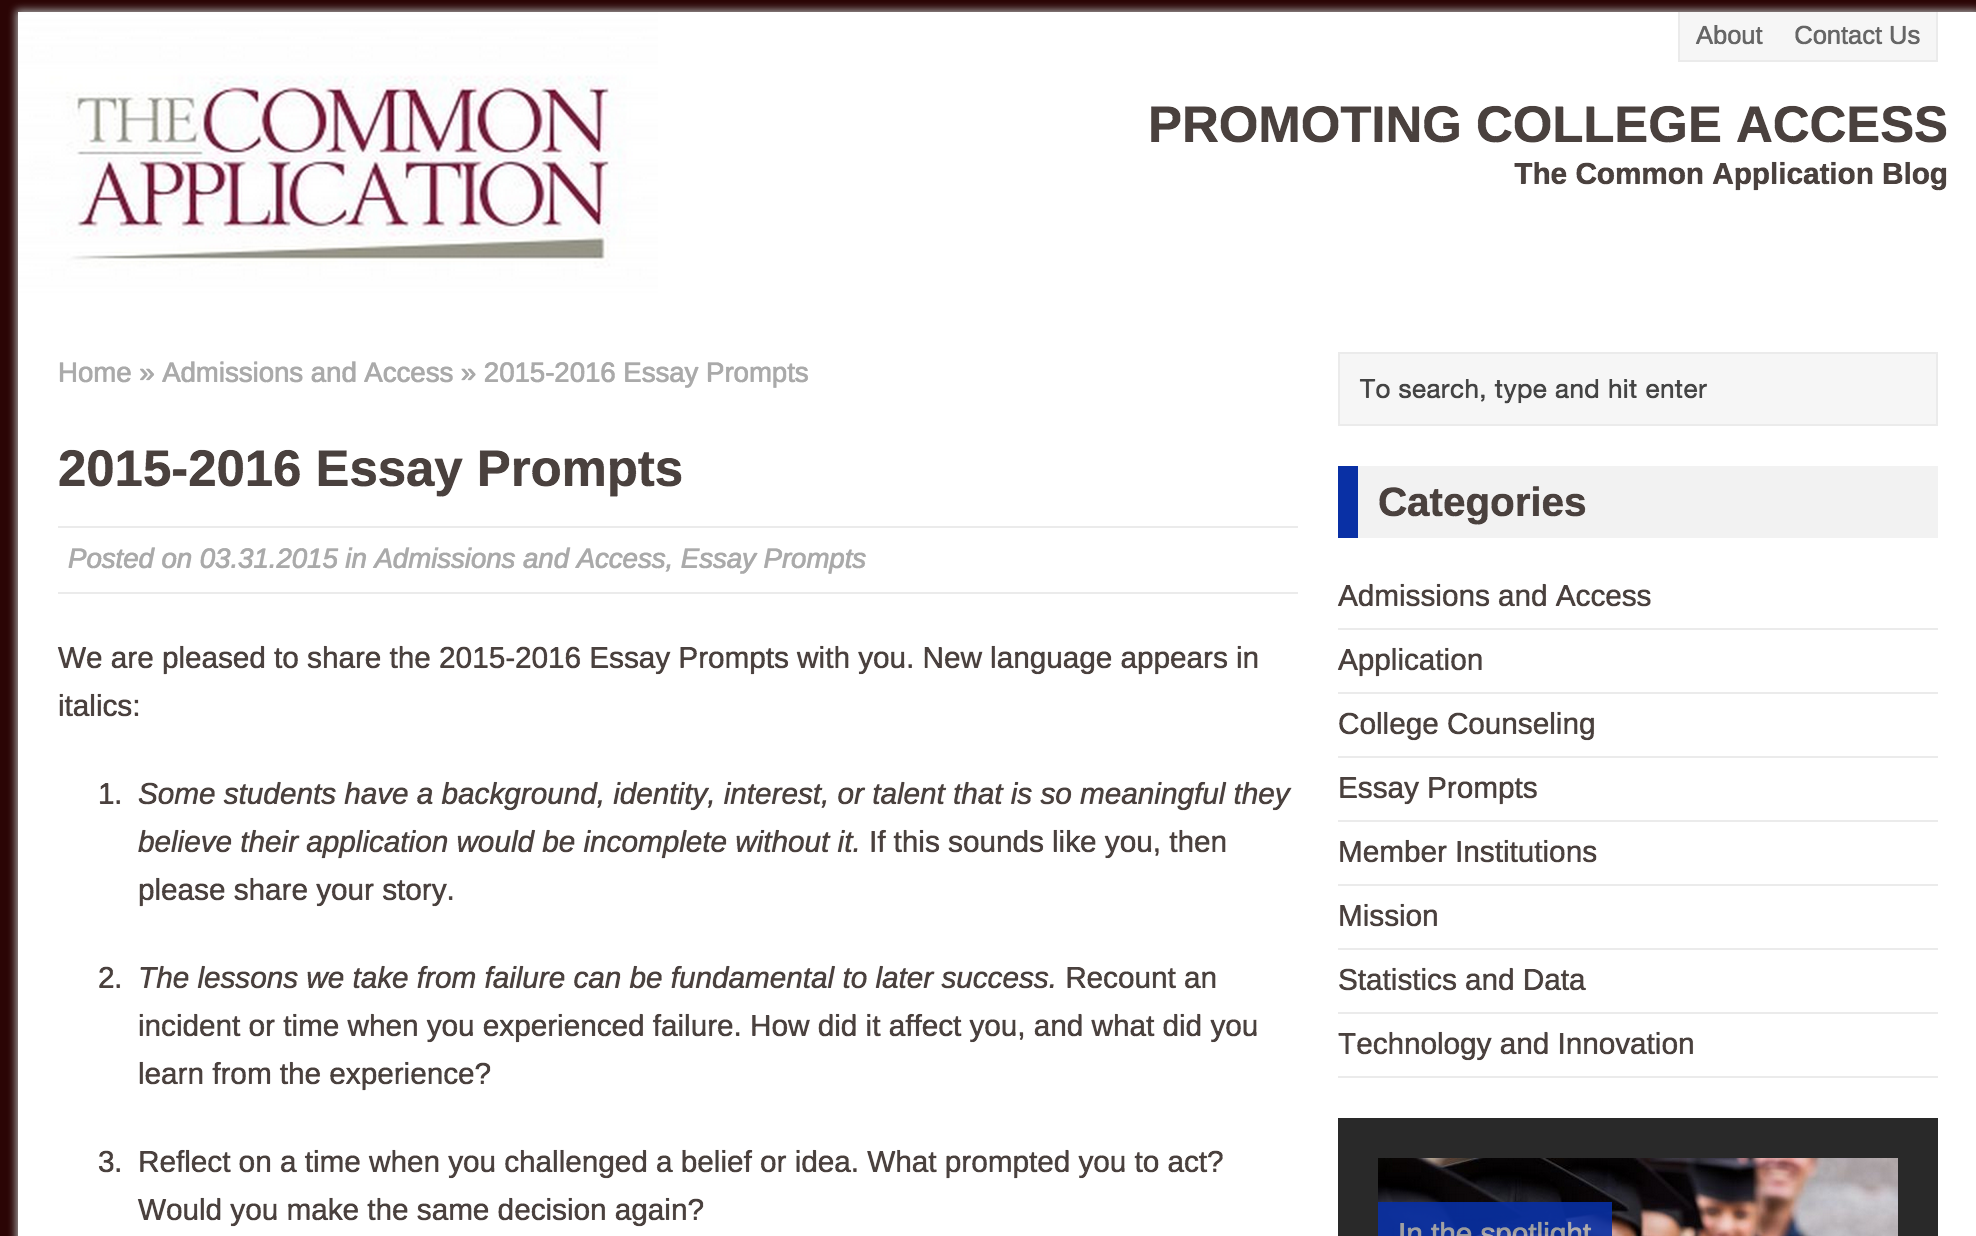 002 Essay Example Screen Shot At Pm Common App Unusual Prompt 1 Examples 3 4 Full